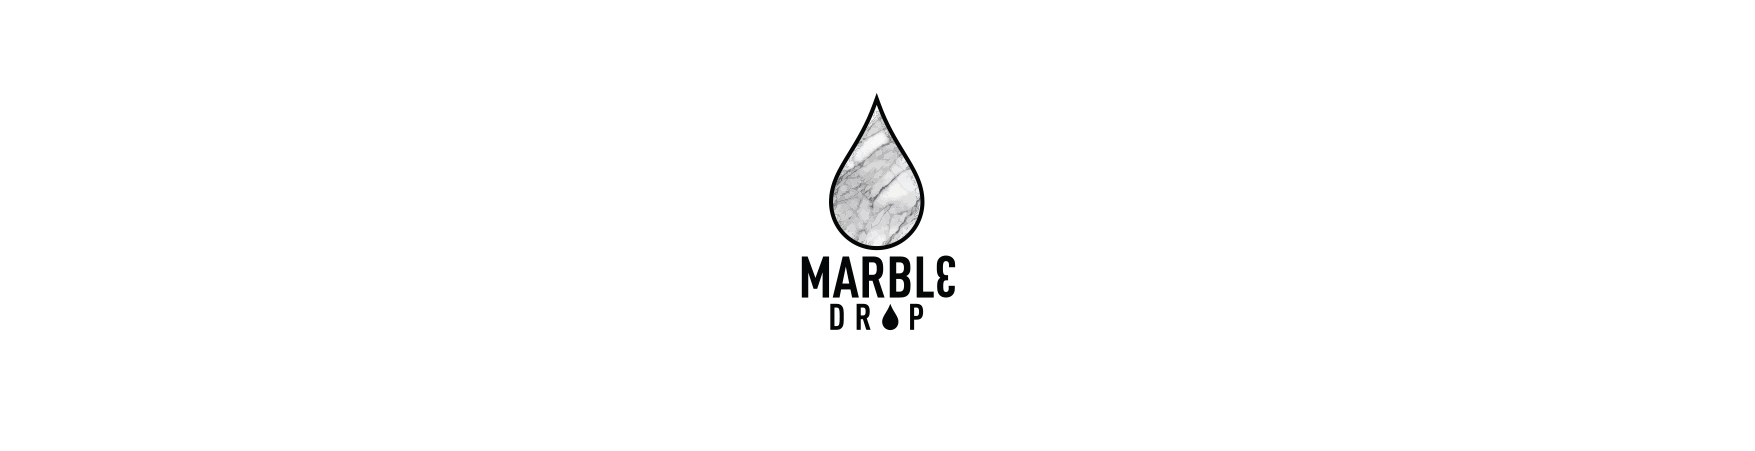 Marble Drop